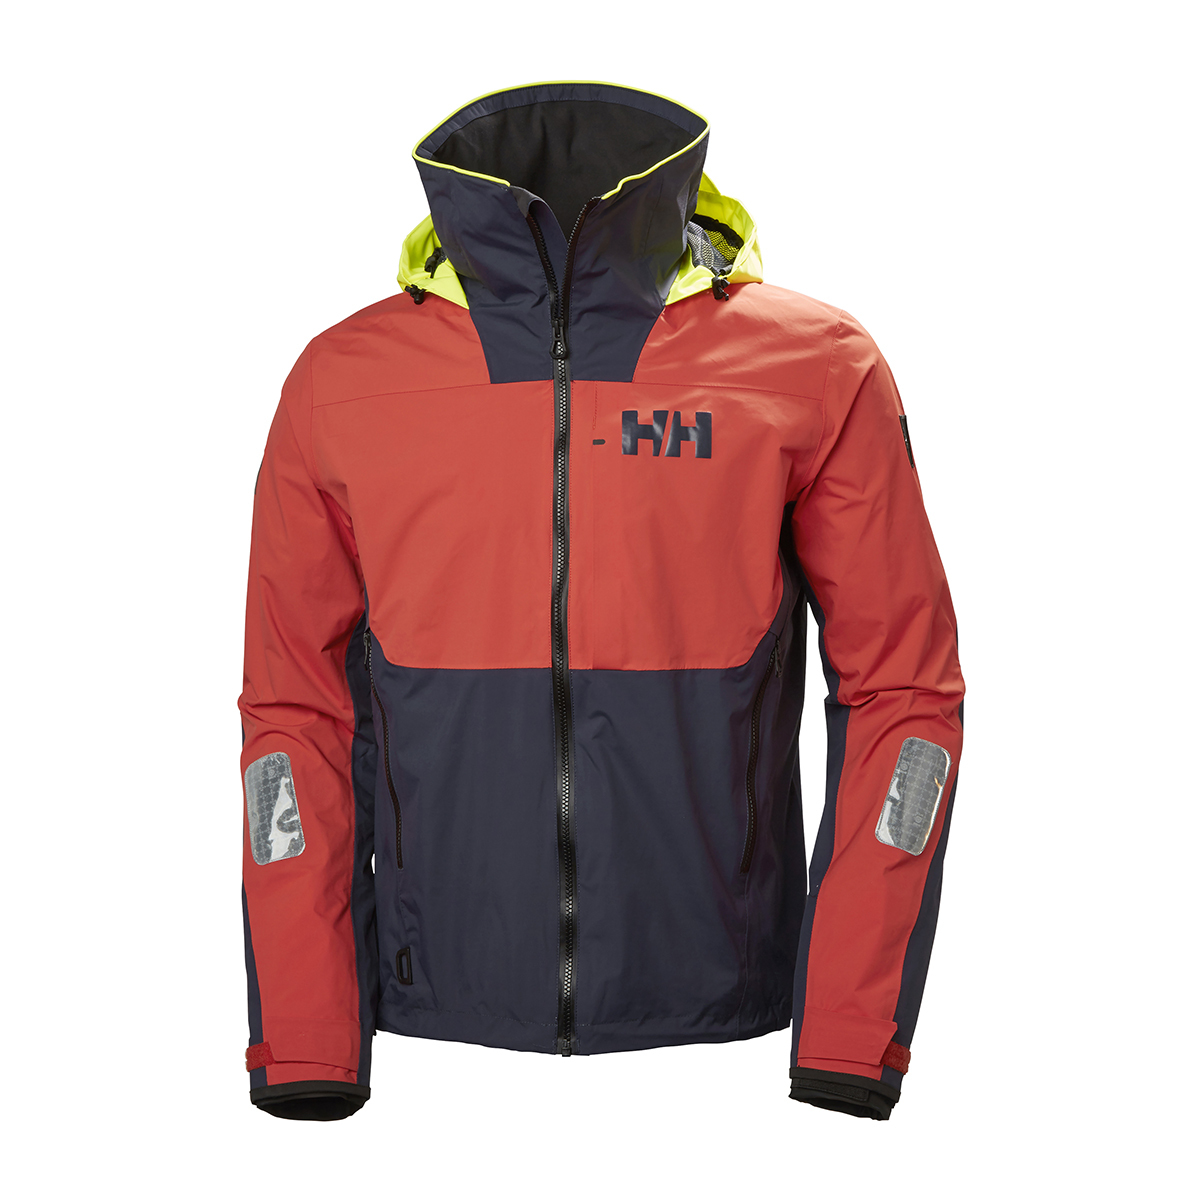 CERATA LIFT JACKET Helly Hansen